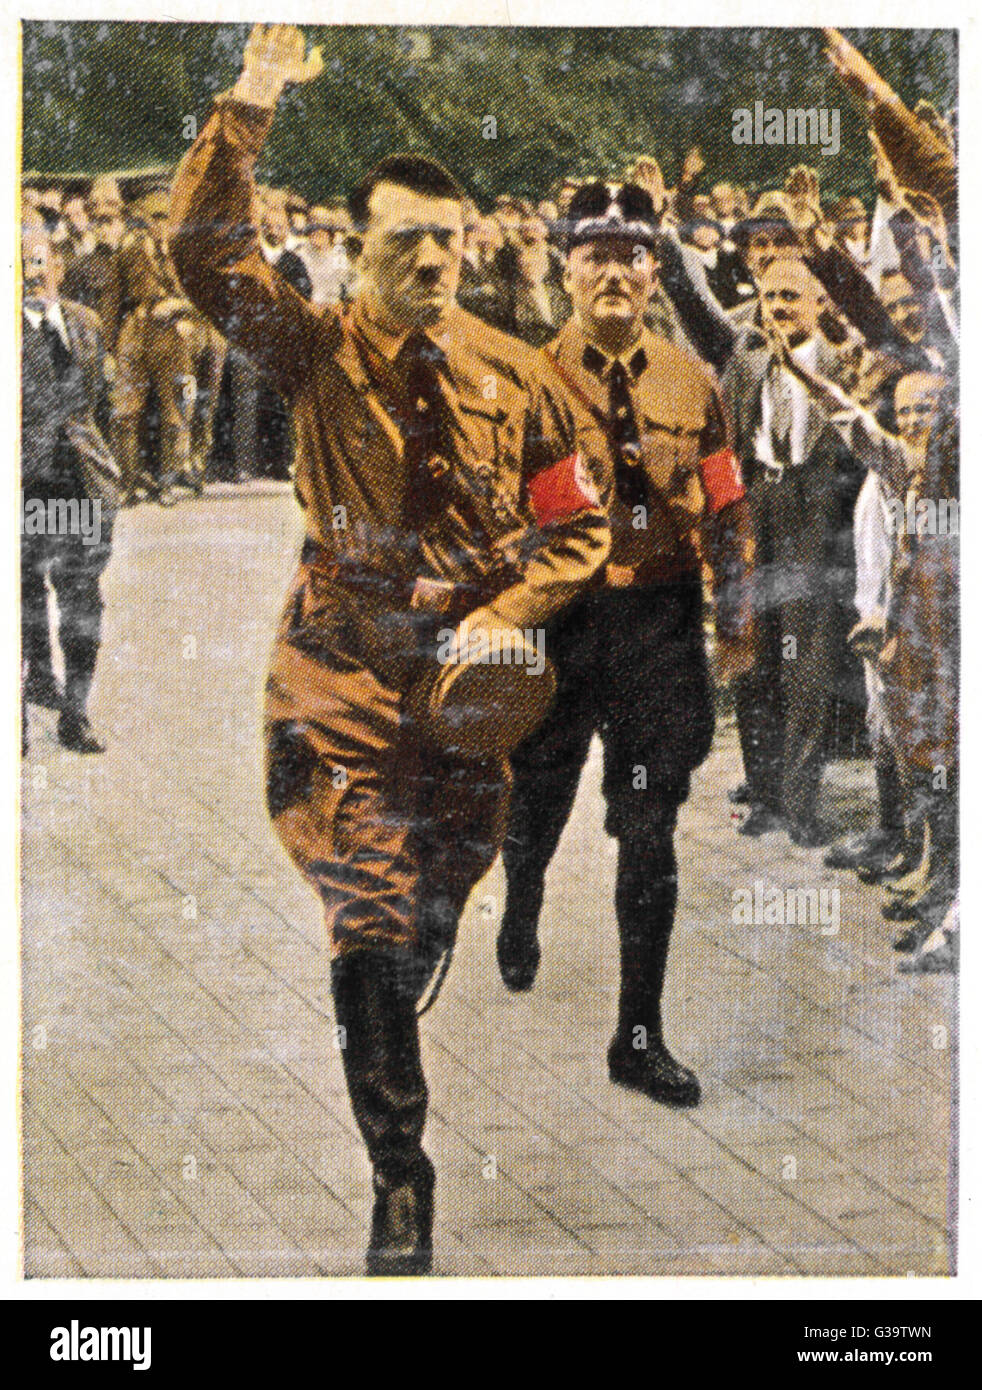 ADOLF HITLER  Saluting the crowds  at Nuremberg in 1929       Date: 1889 - 1945 - Stock Image